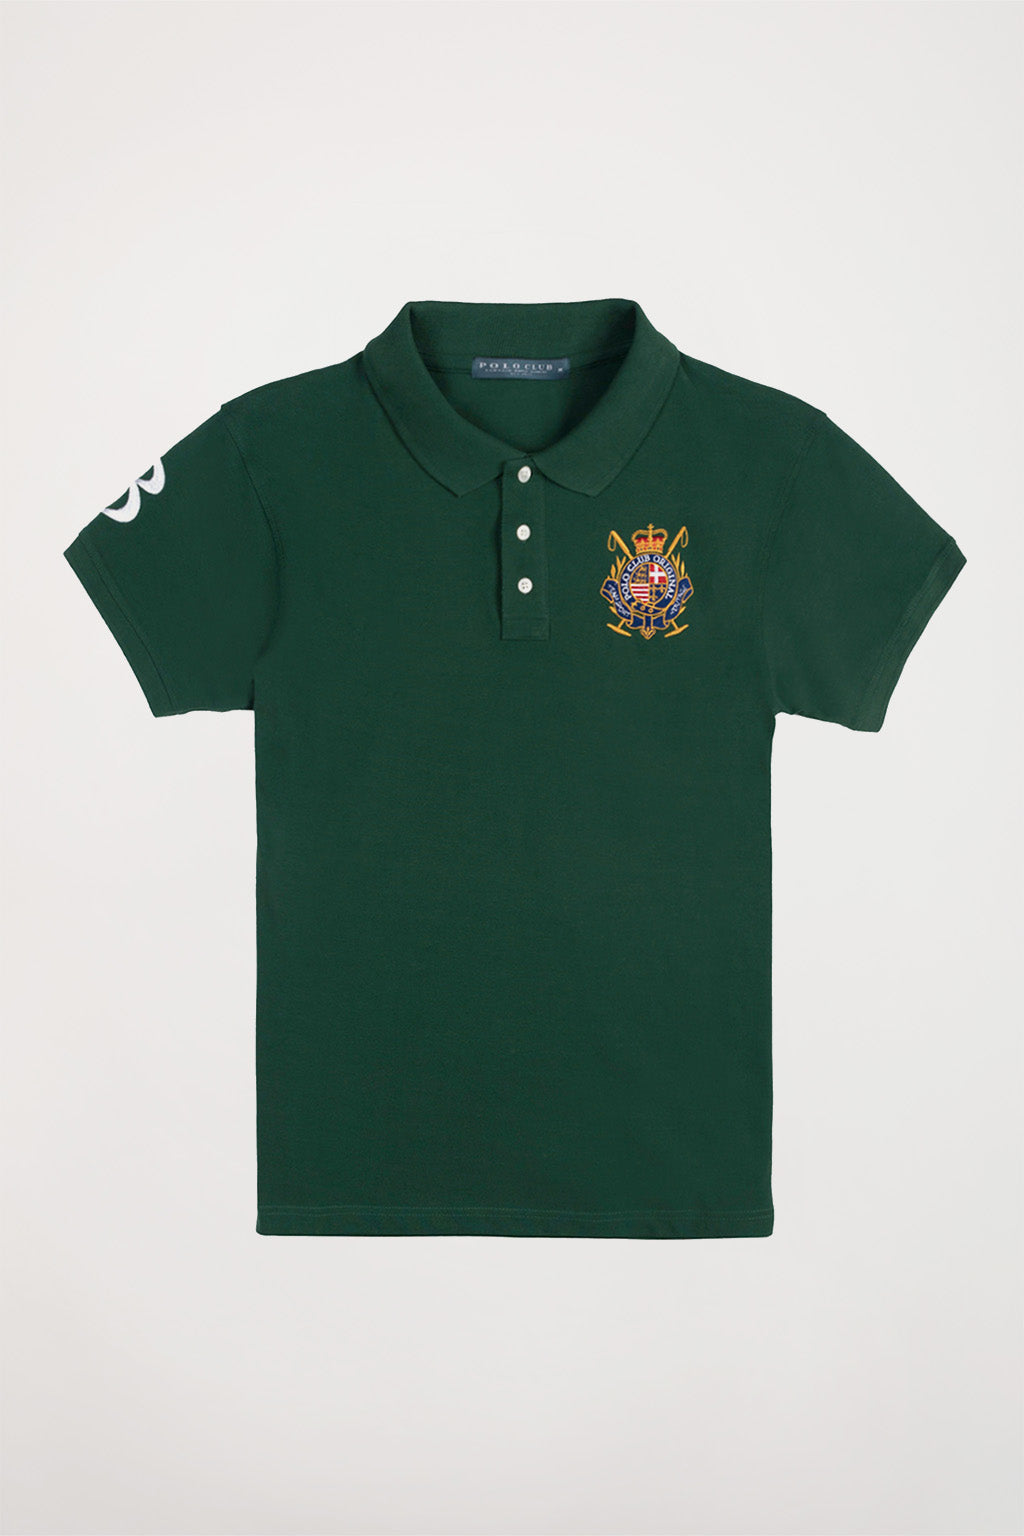 Green polo shirt with nautical badge